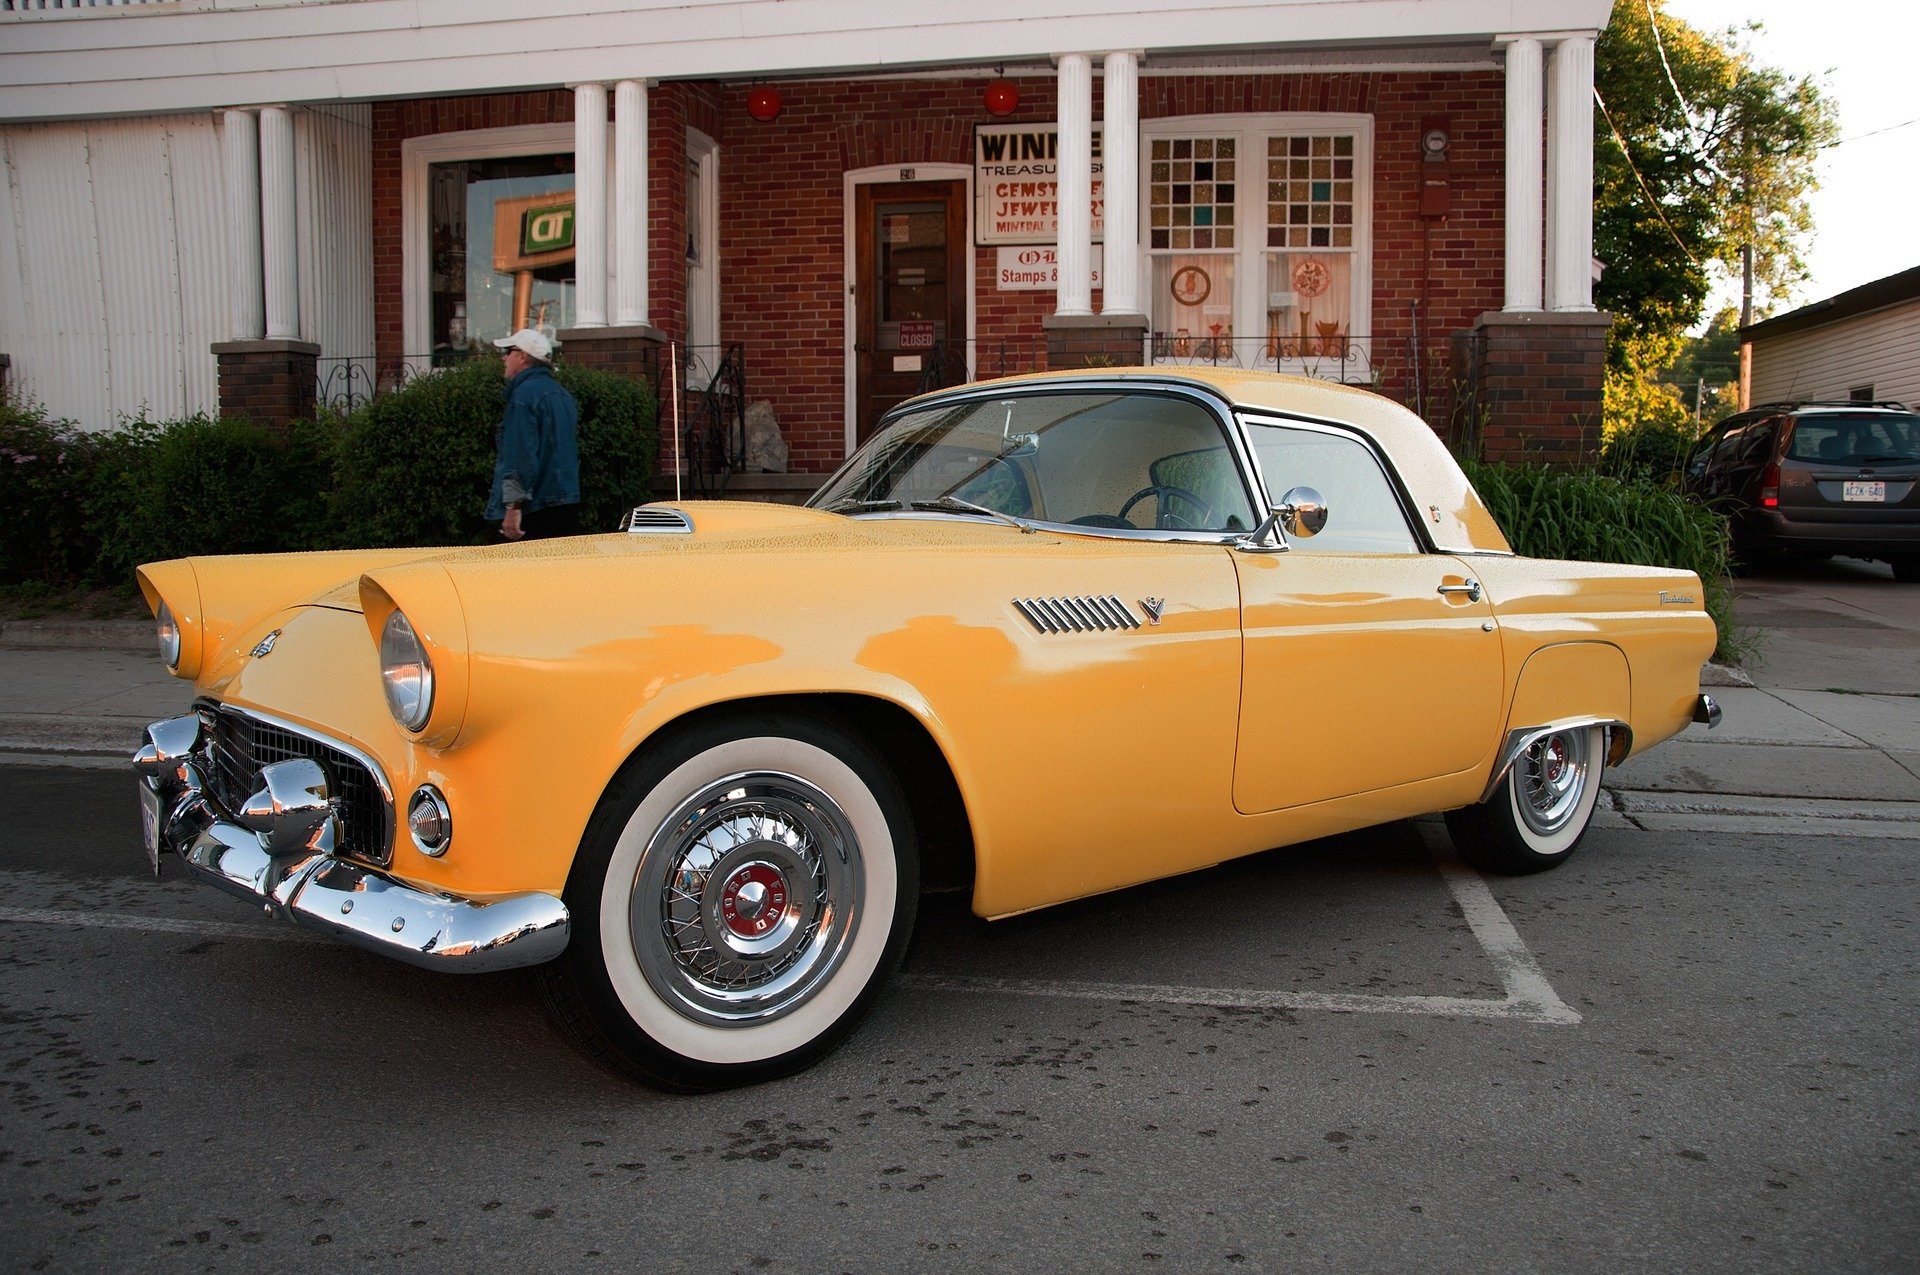 Classic Yellow Ford Thunderbird in Hopkinsville